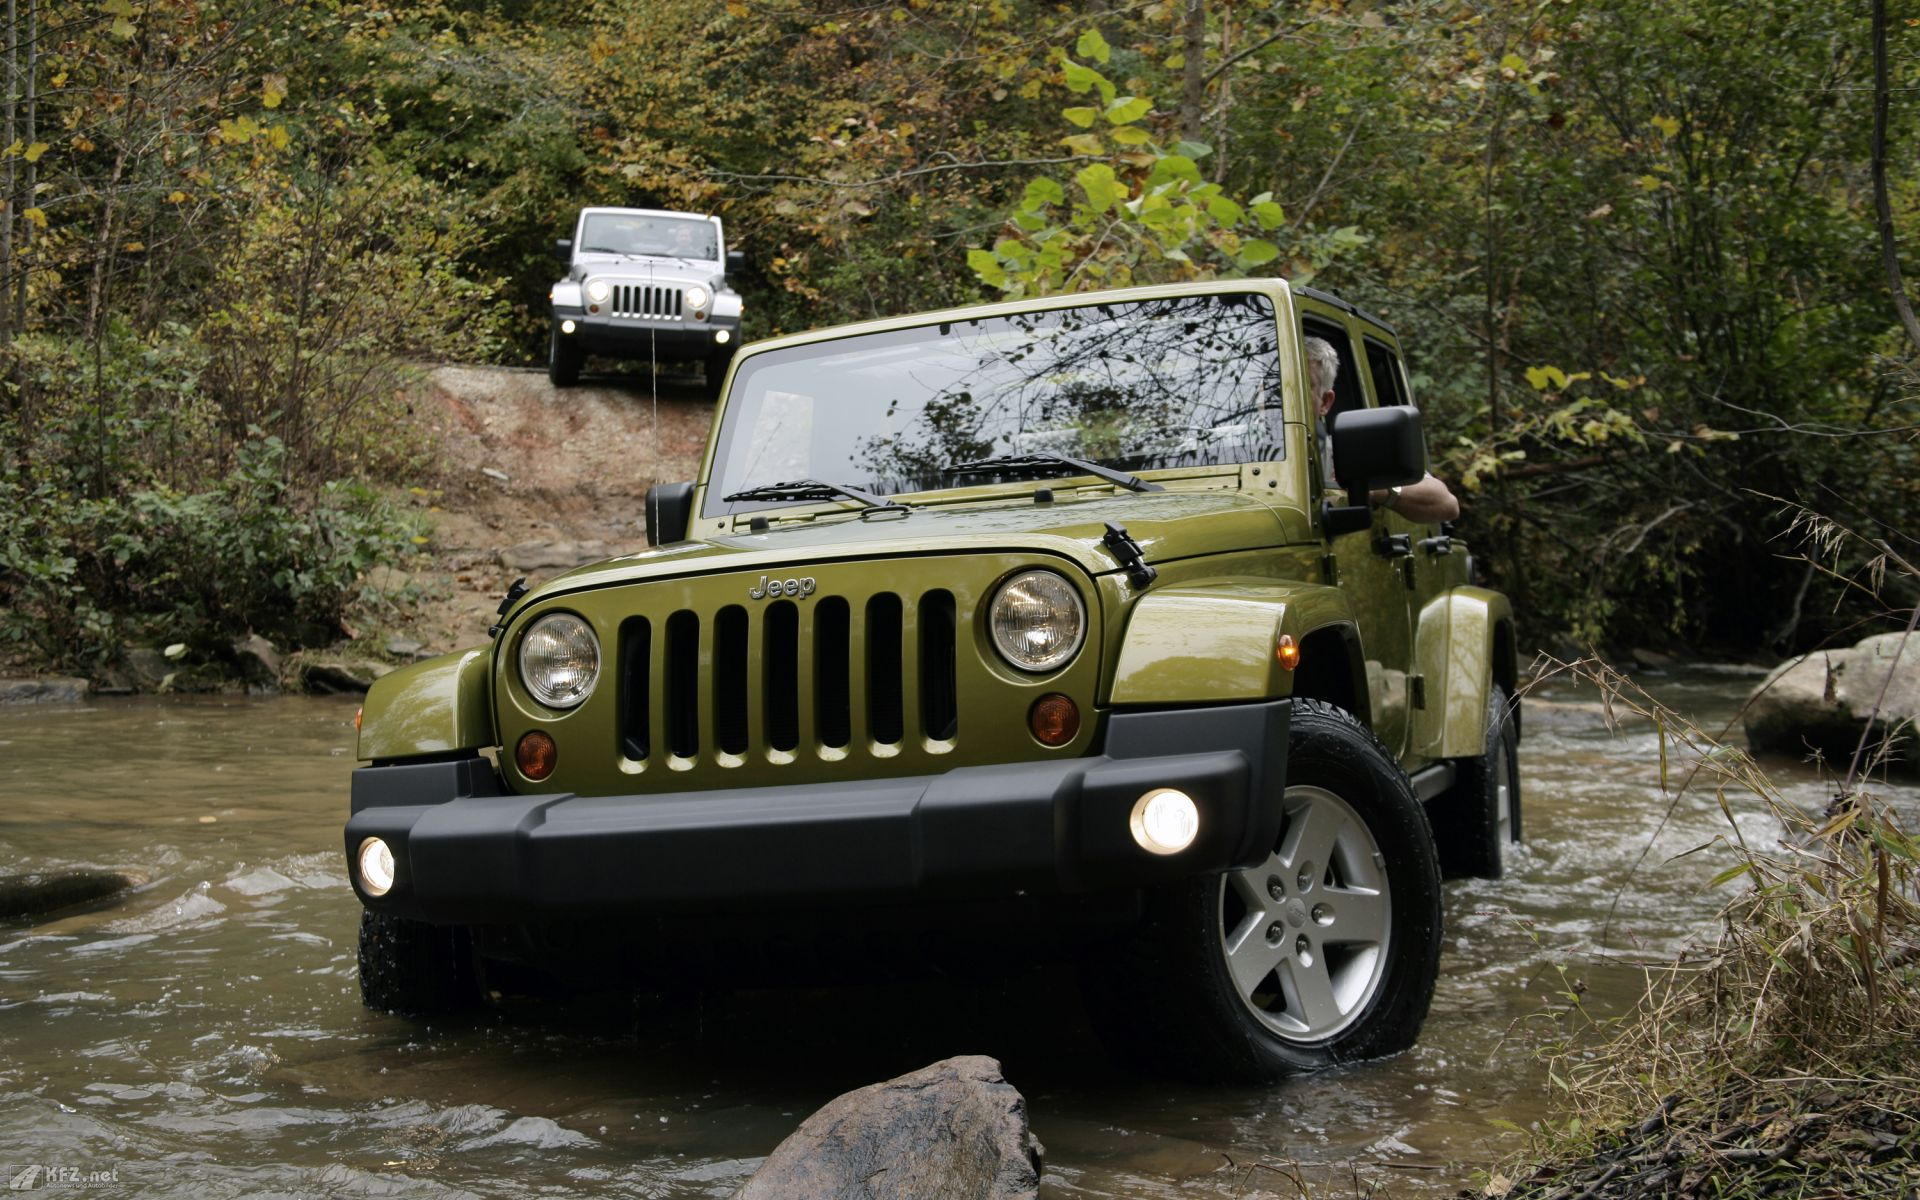 on November 13 2015 By Stephen Comments Off on Jeep HD Wallpapers 1920x1200